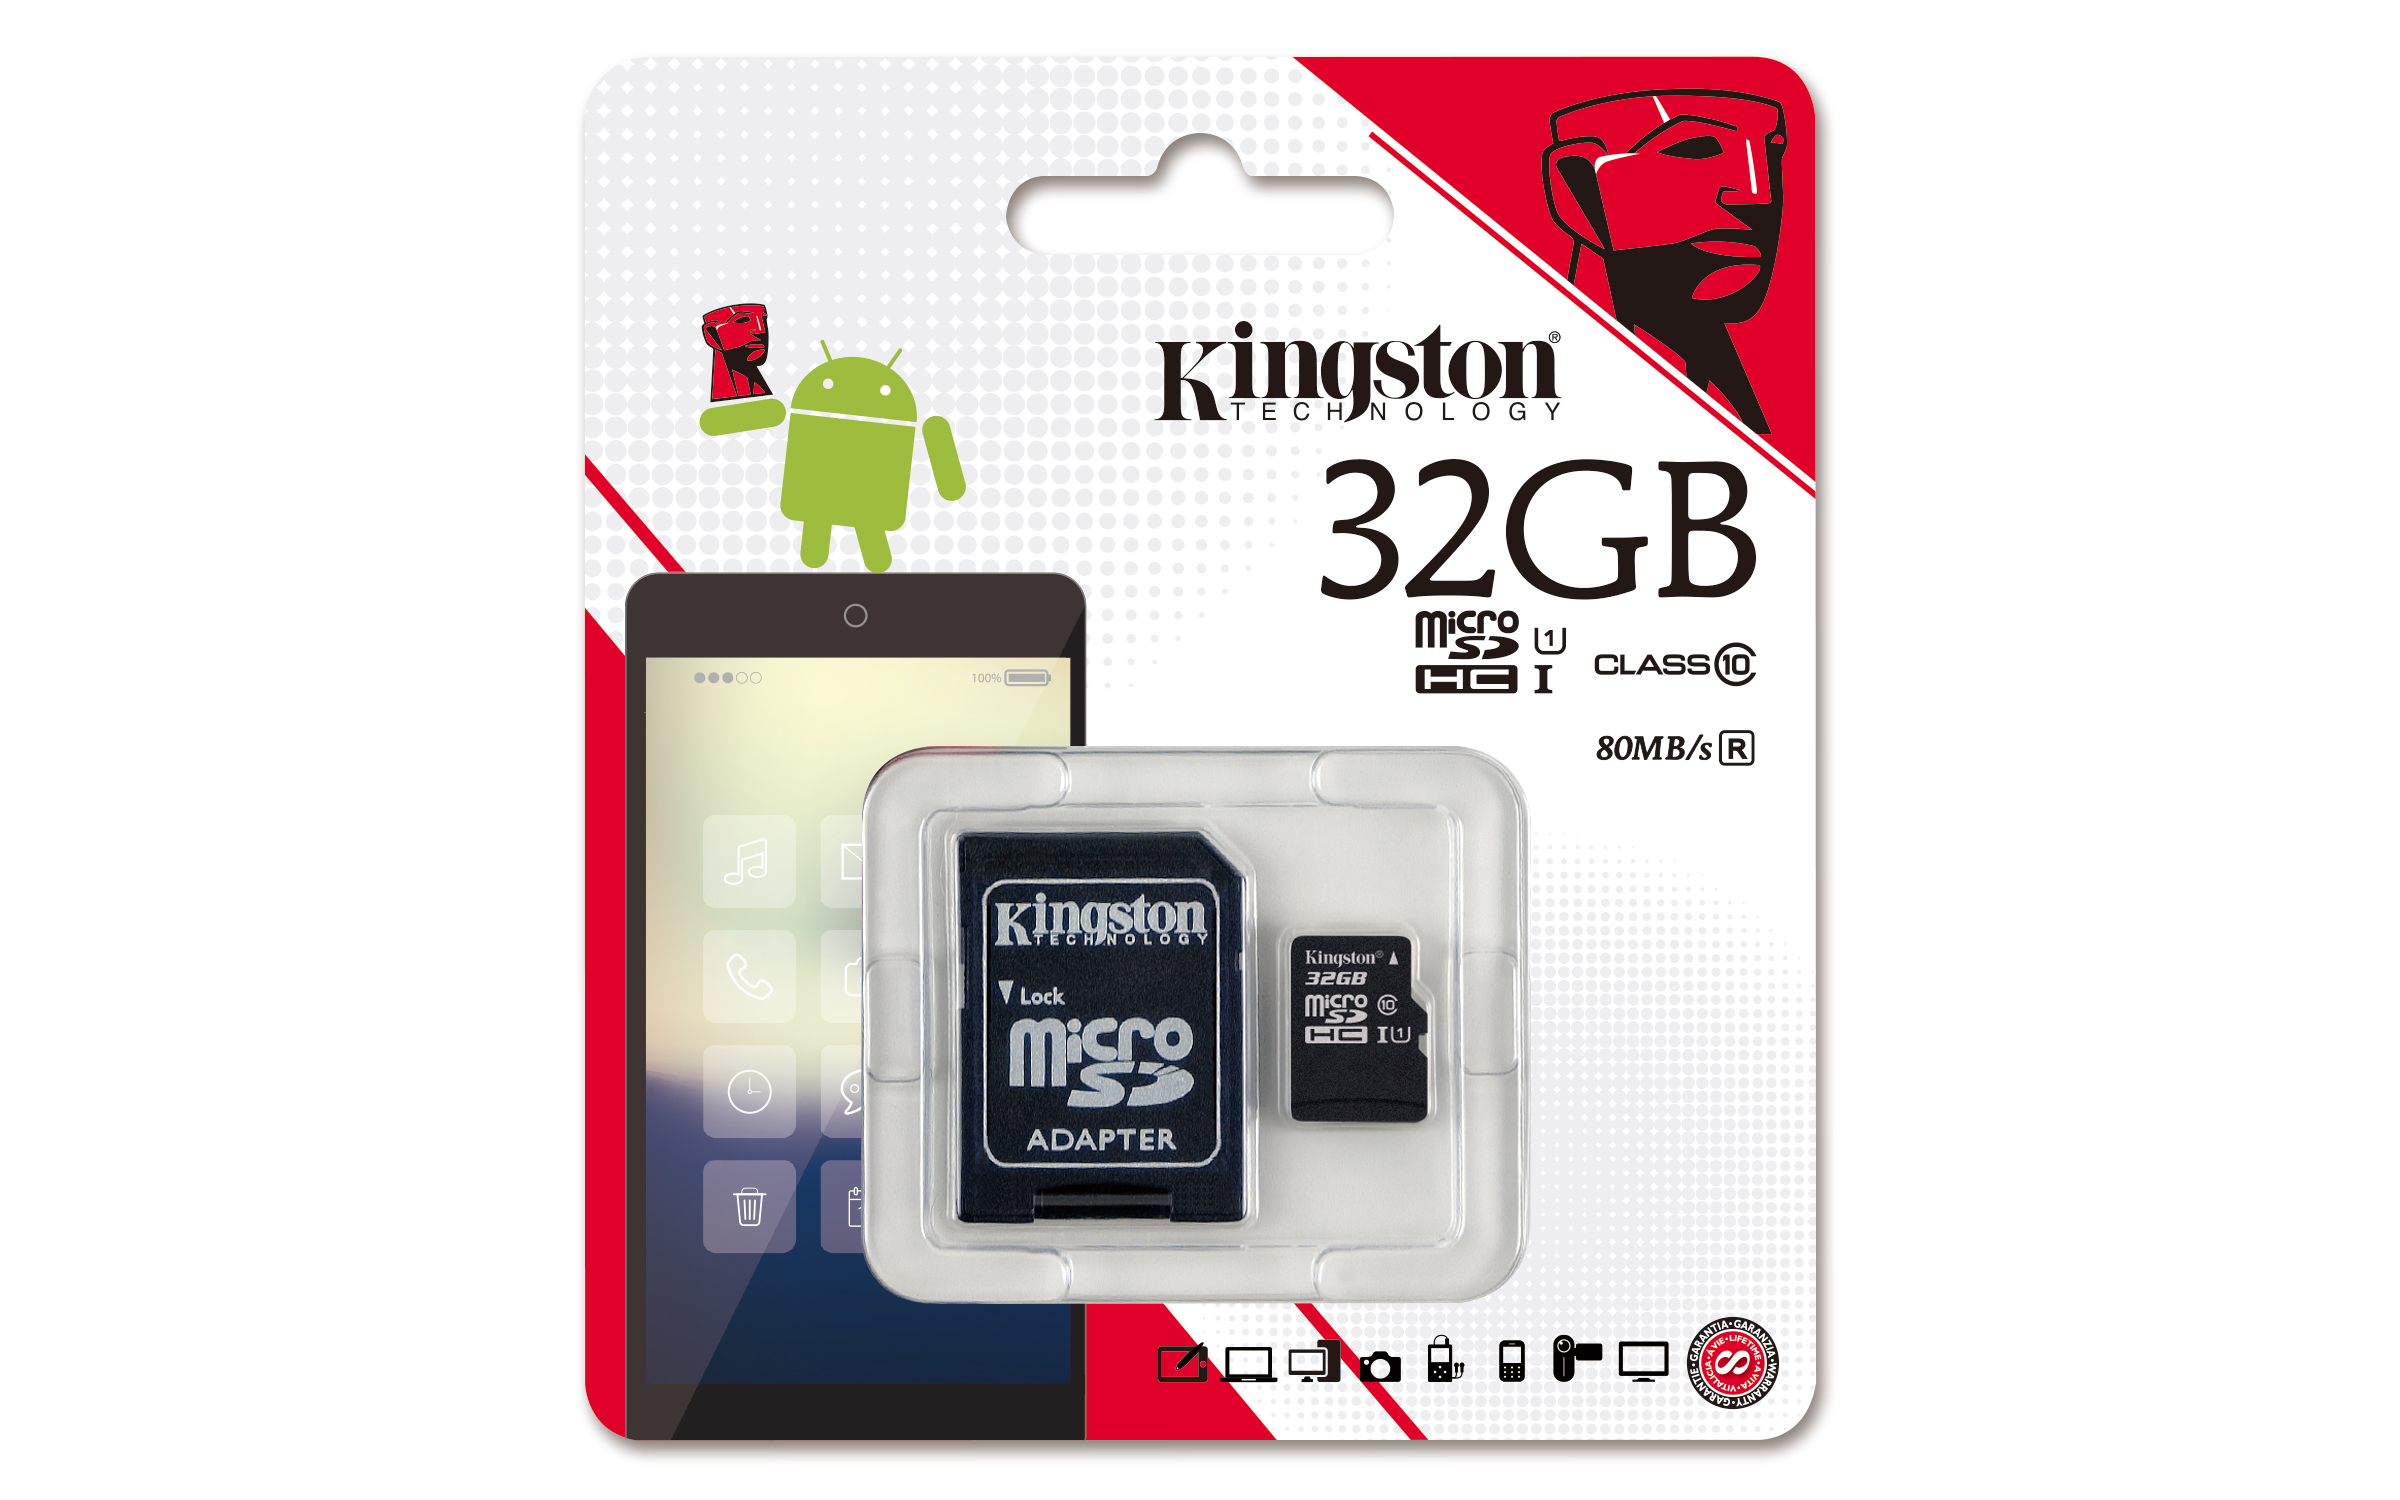 32 GB MICRO SD CARD KINGSTON CLASS10